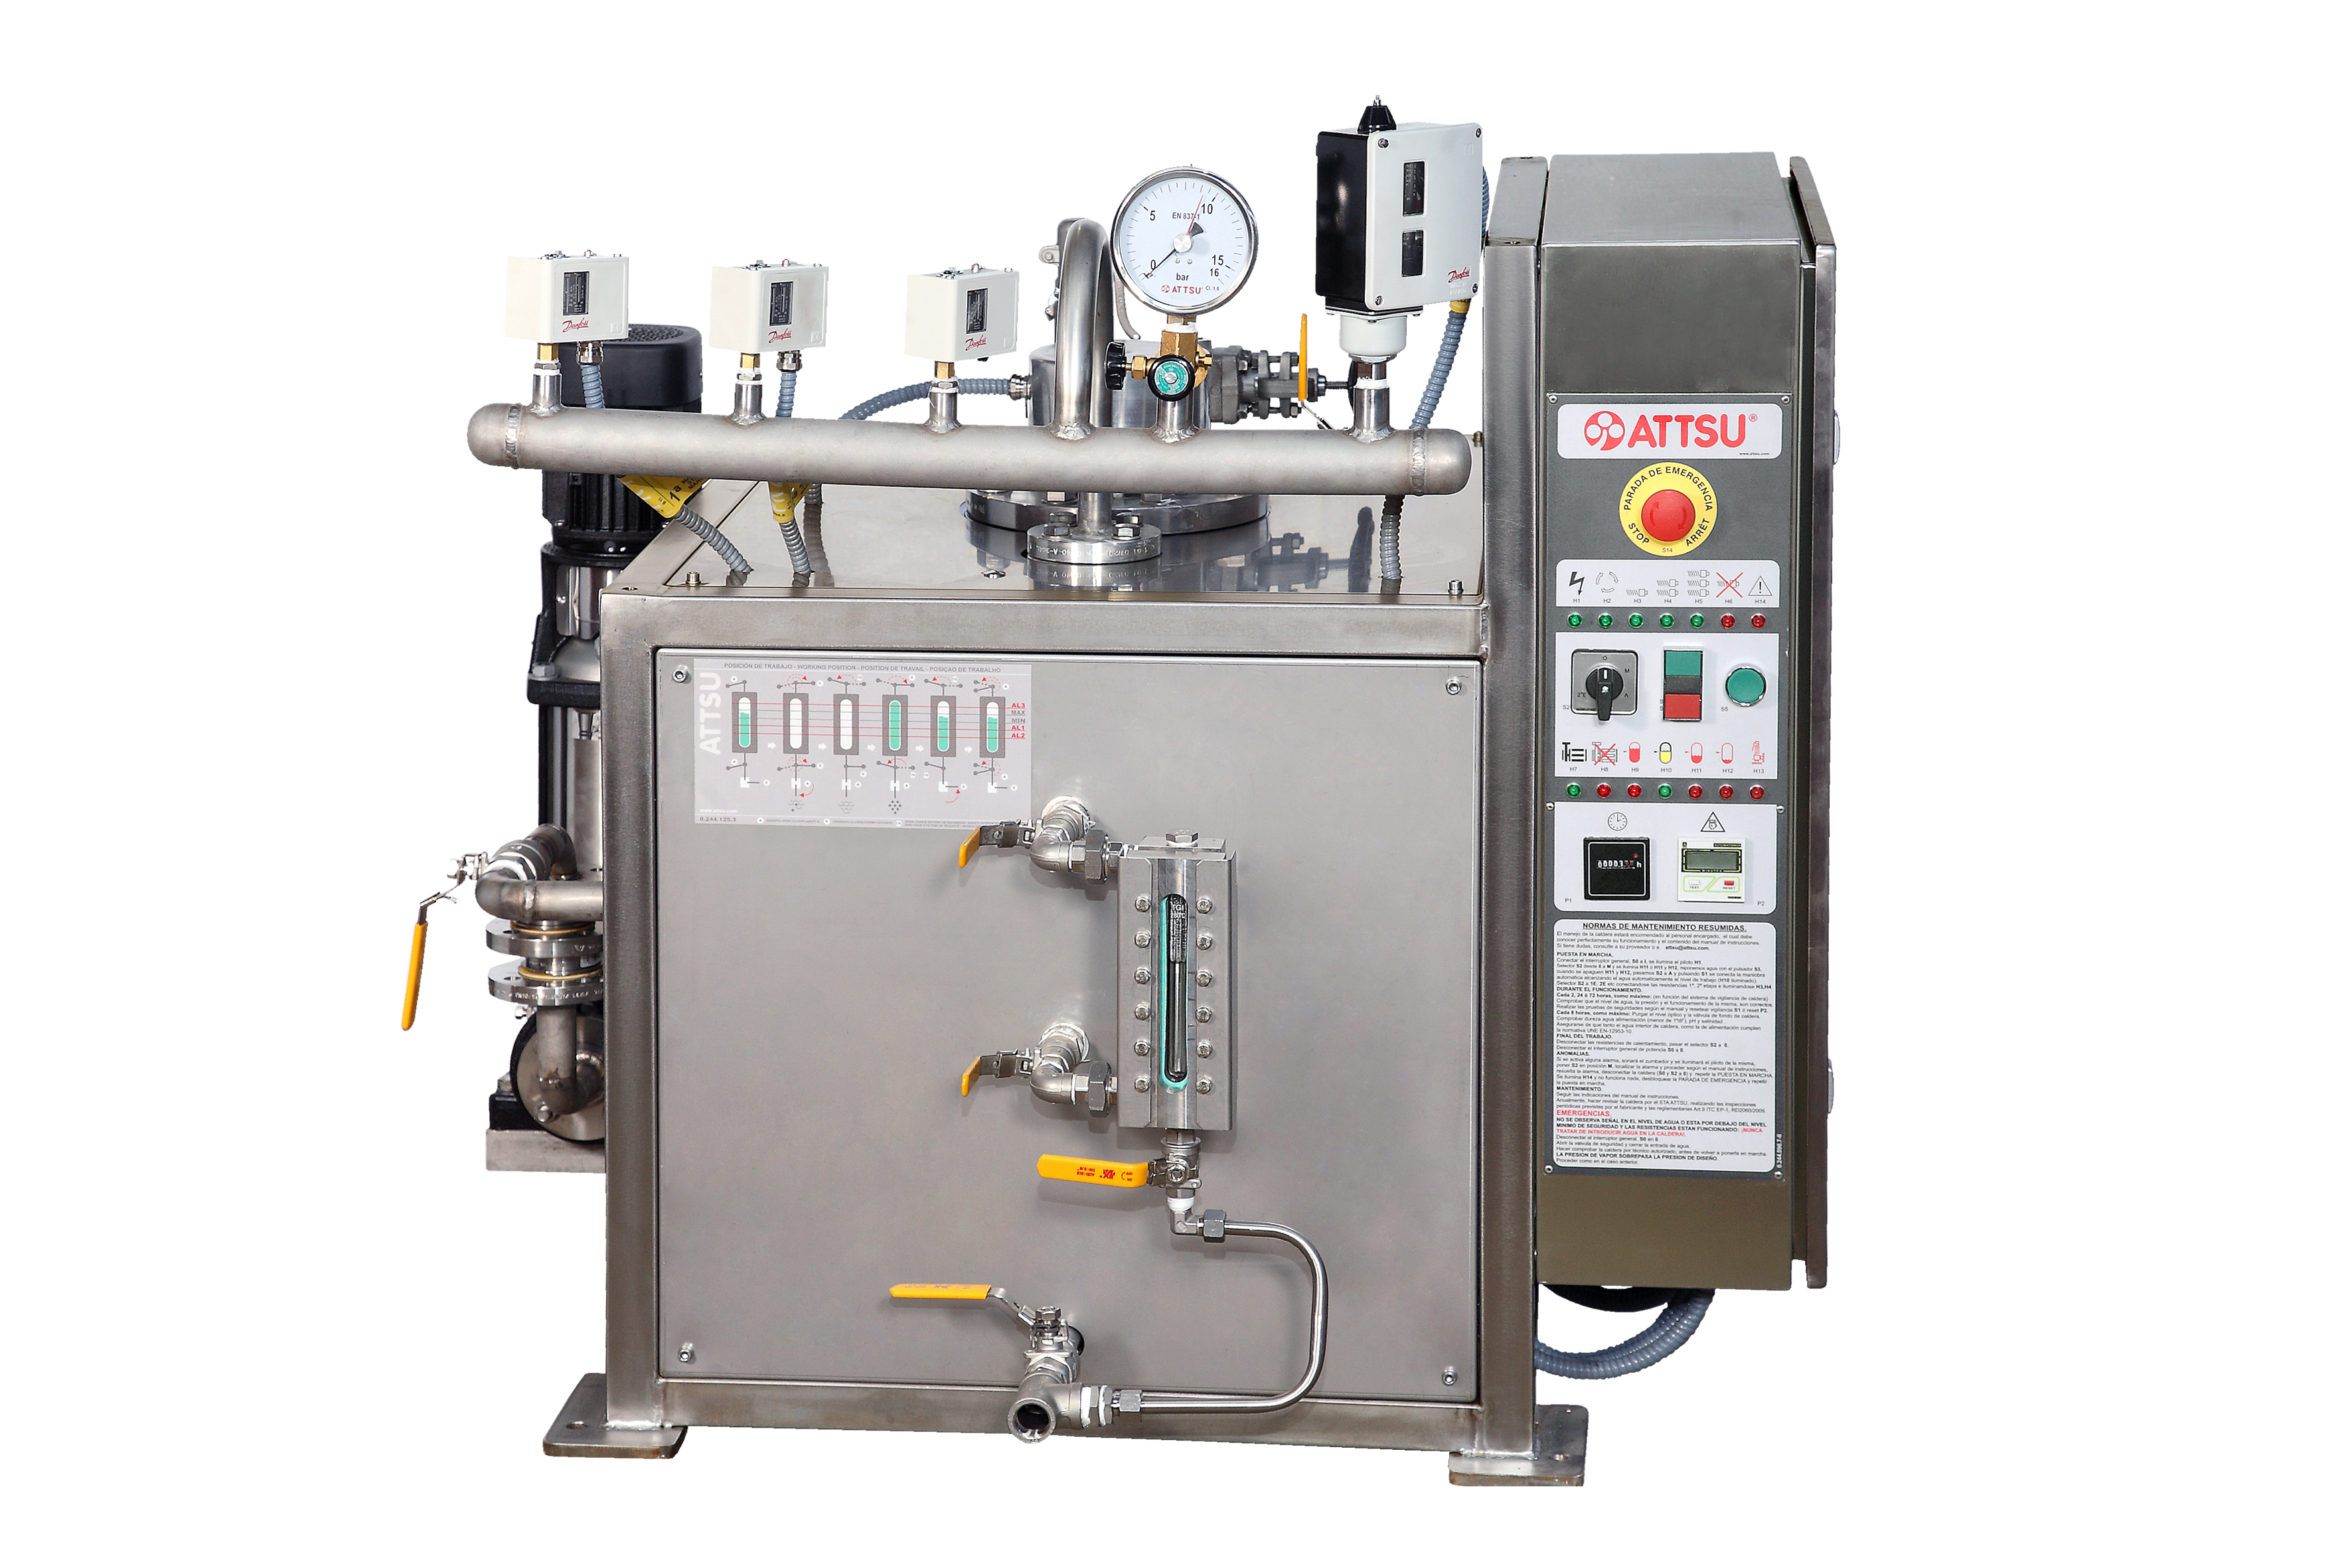 Electric Steam Boiler ~ Attsu gei inox electric steam boiler made of stainless steel